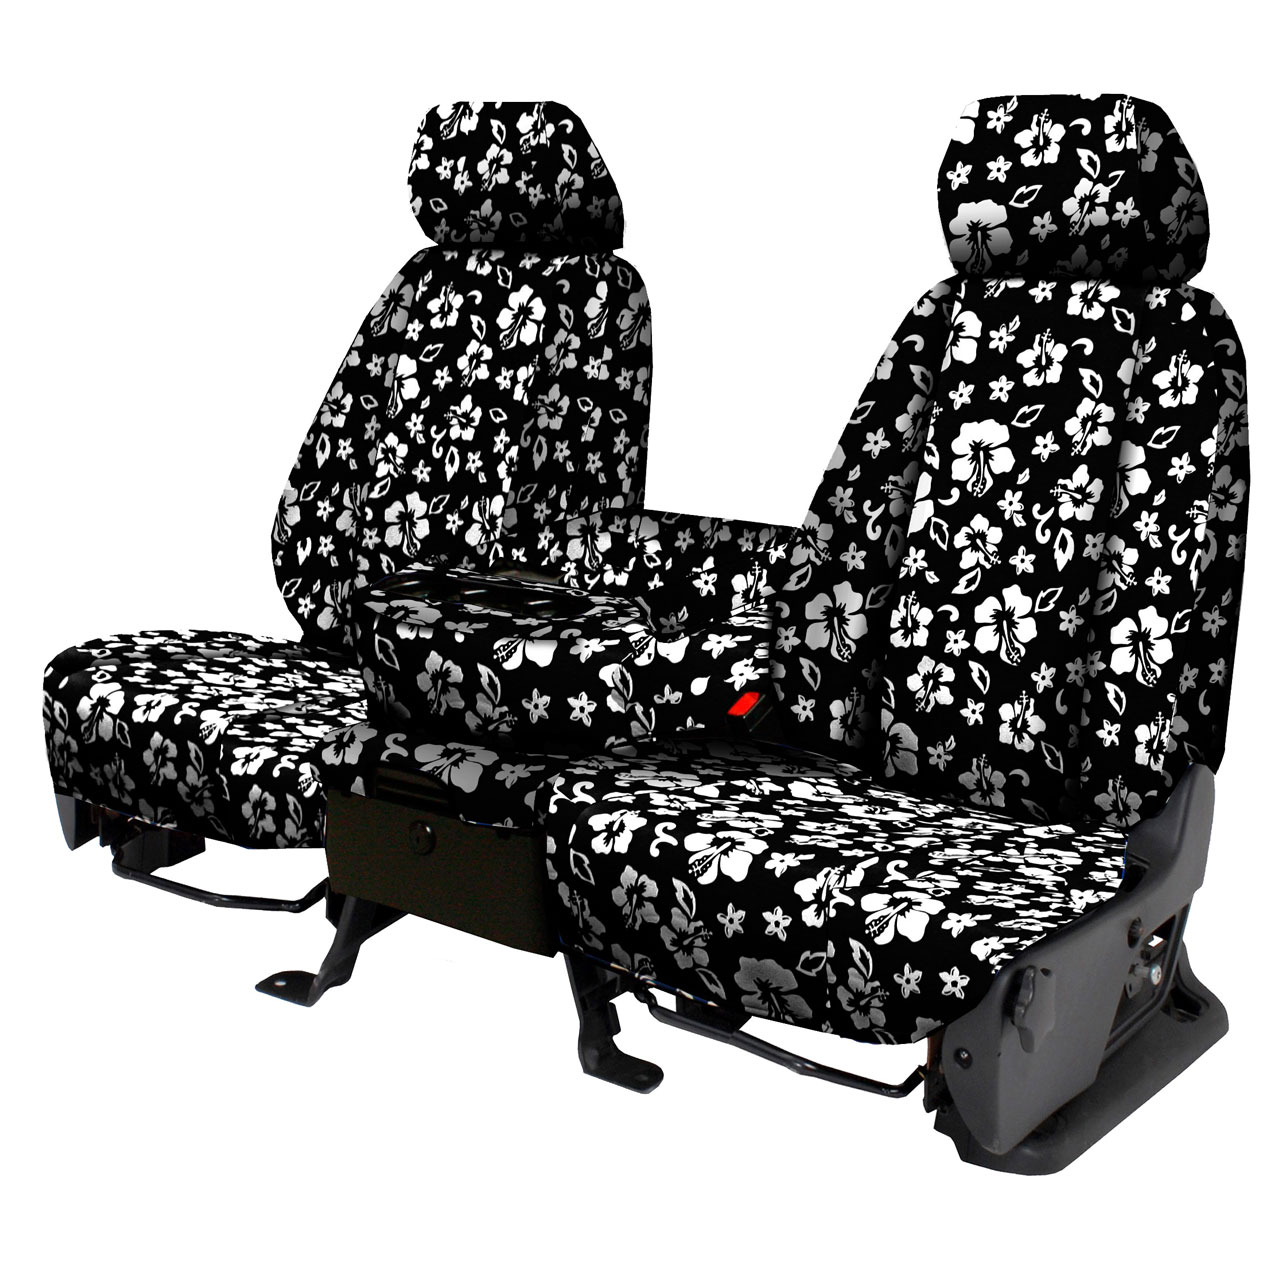 hawaiian chair covers iron rocking seat cars trucks suvs made in america